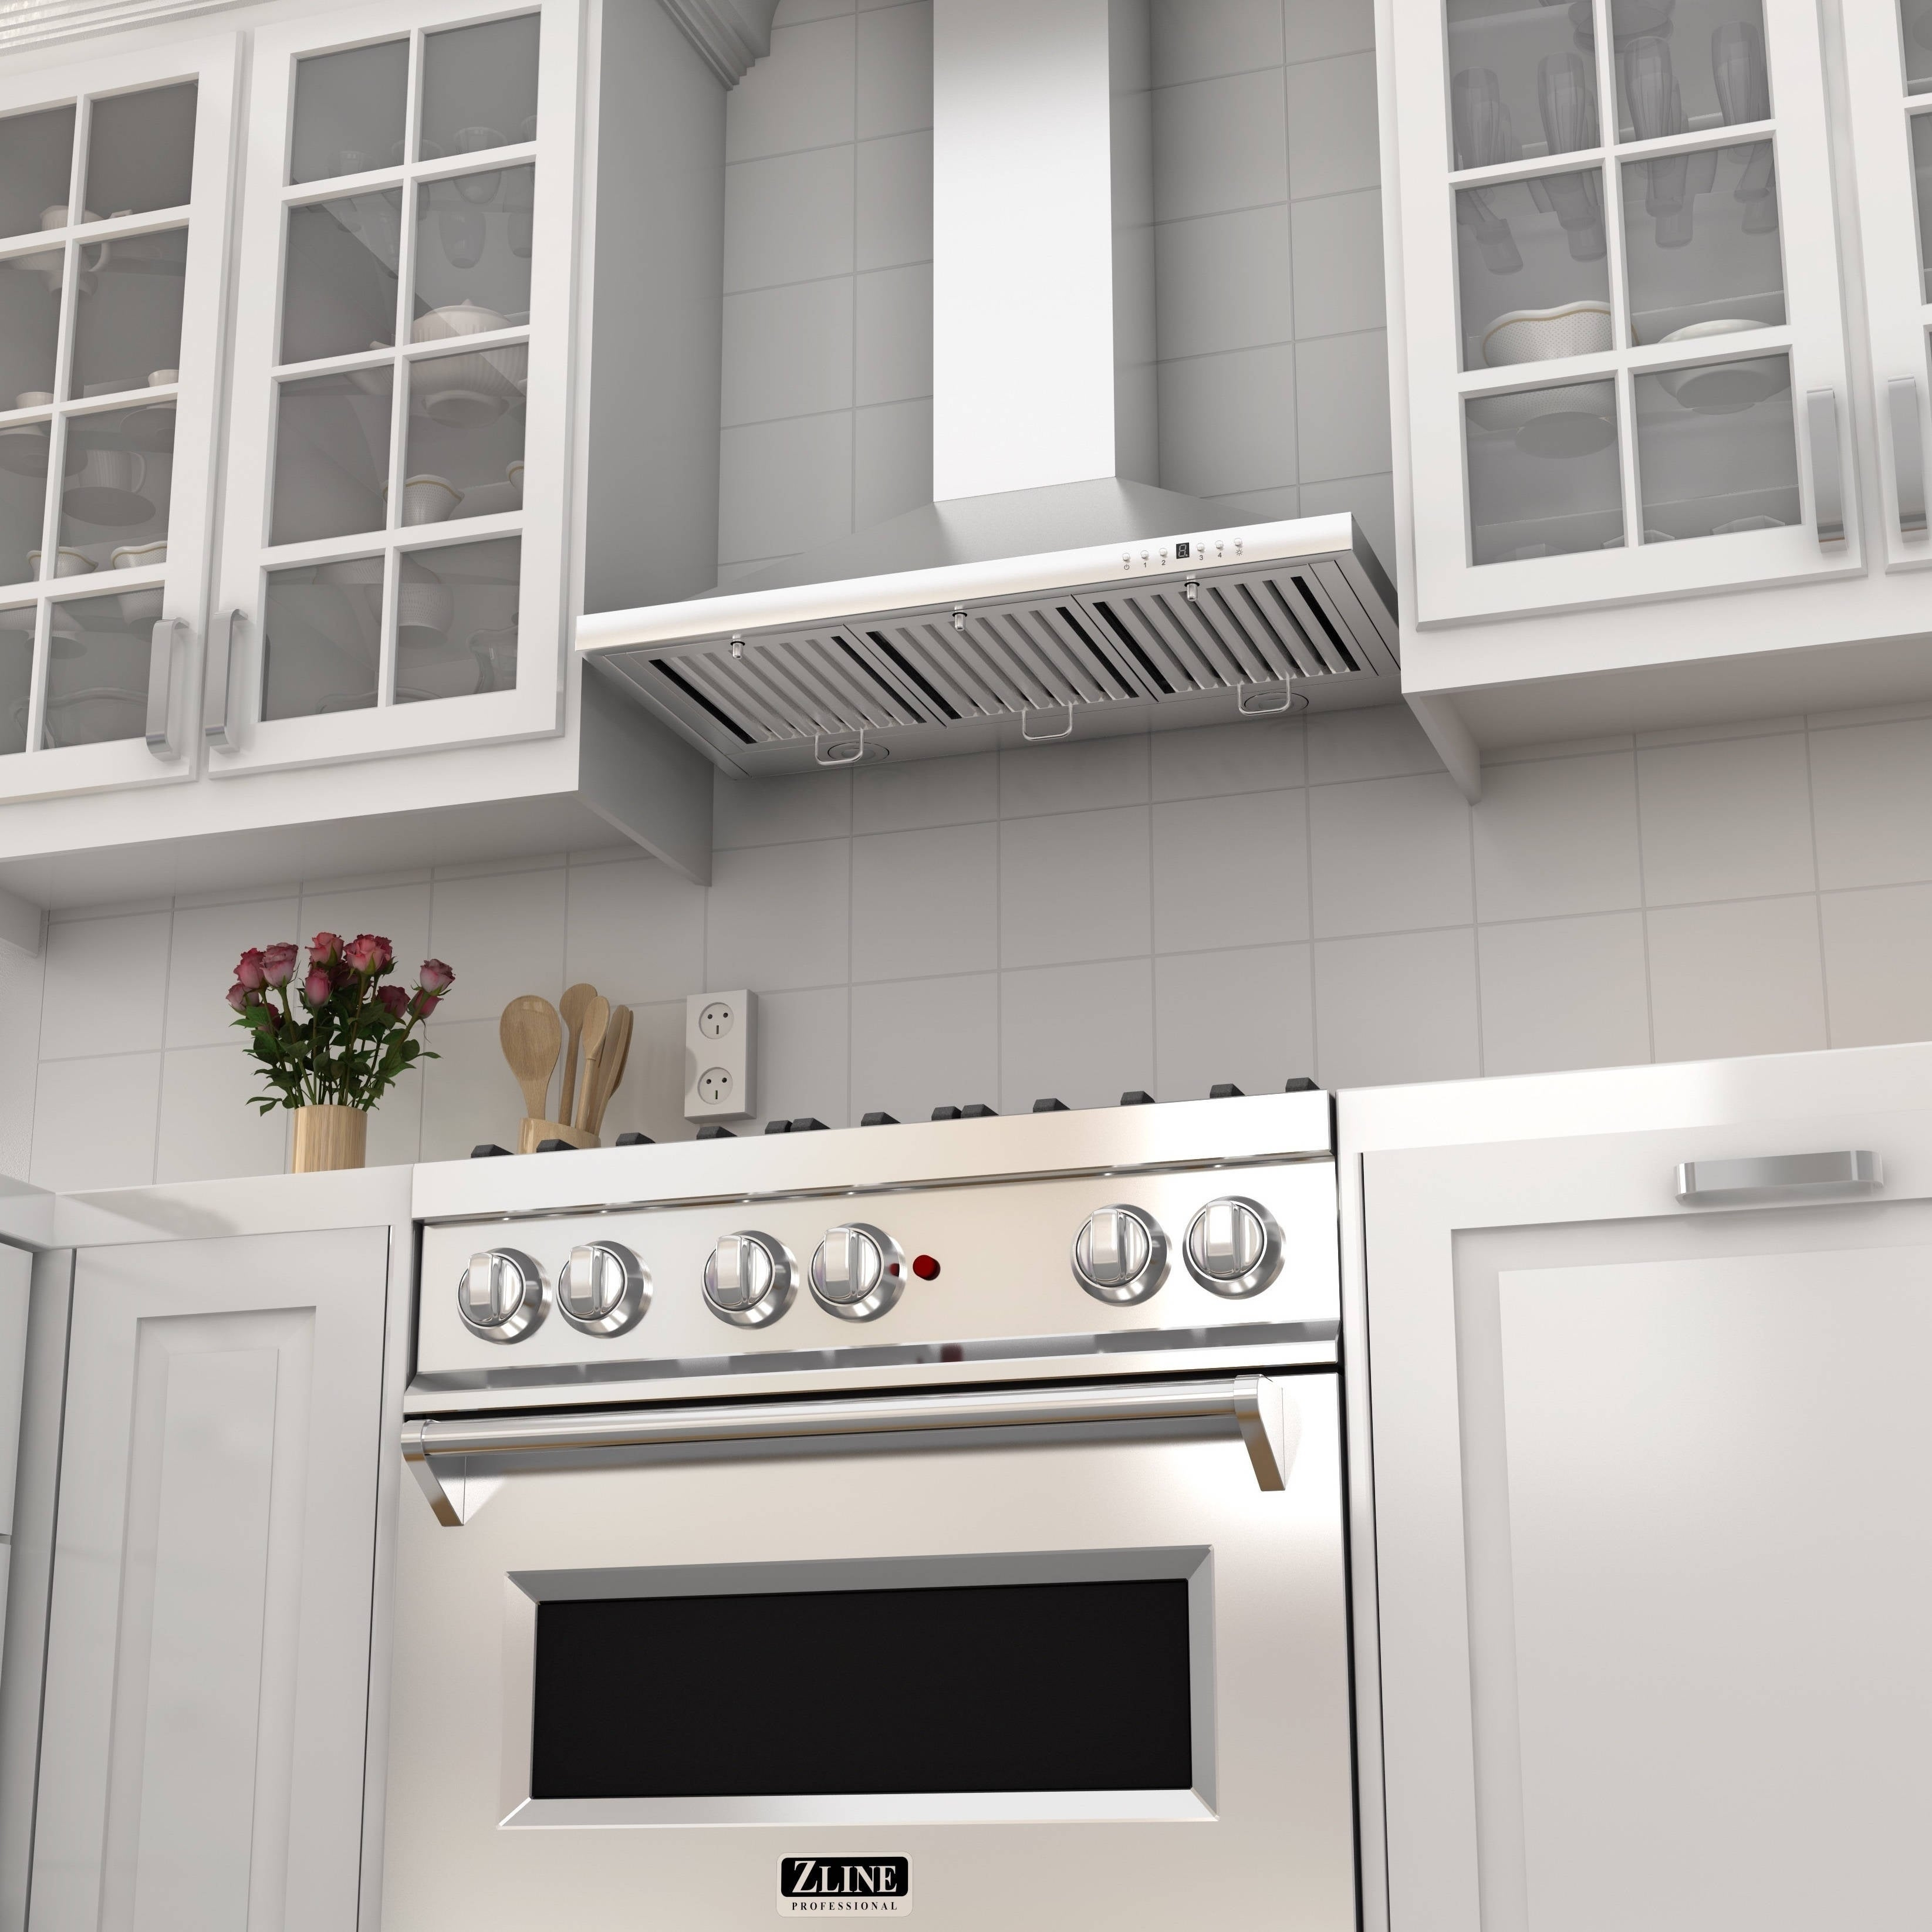 Shop ZLINE 48 in. 760 CFM Outdoor Wall Mount Range Hood in Stainless on corner stove with hood, kitchen tile backsplash with hood, stove top with hood, kitchen cabinets with hood, kitchen island with hood, black stove with hood, wood stove with hood, gas stove with hood, electric stove with hood,